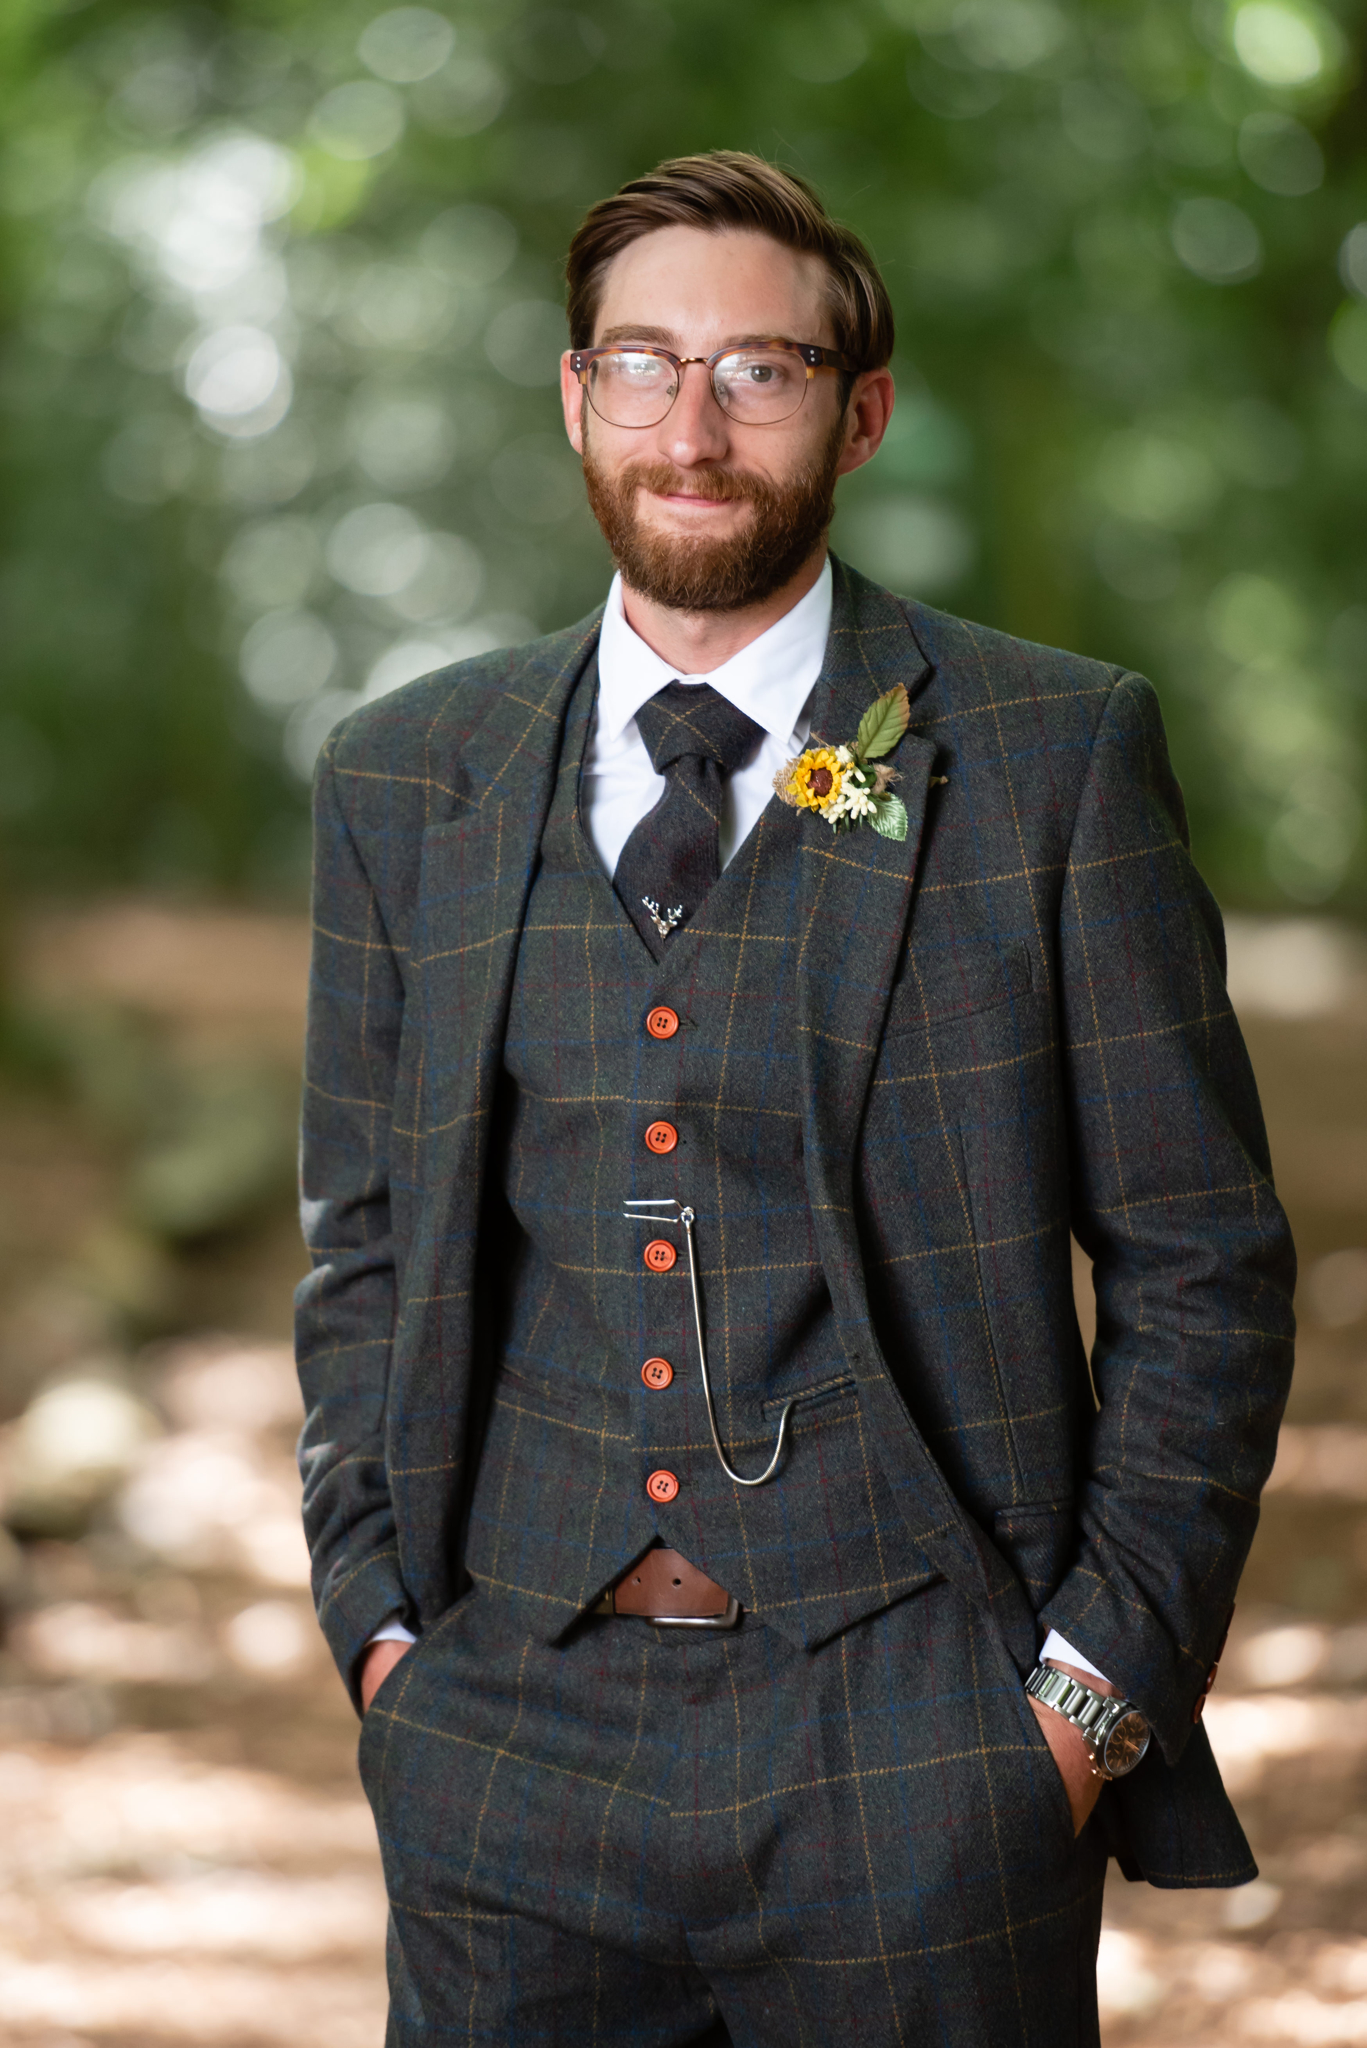 A portrait of the groom before his woodland wedding